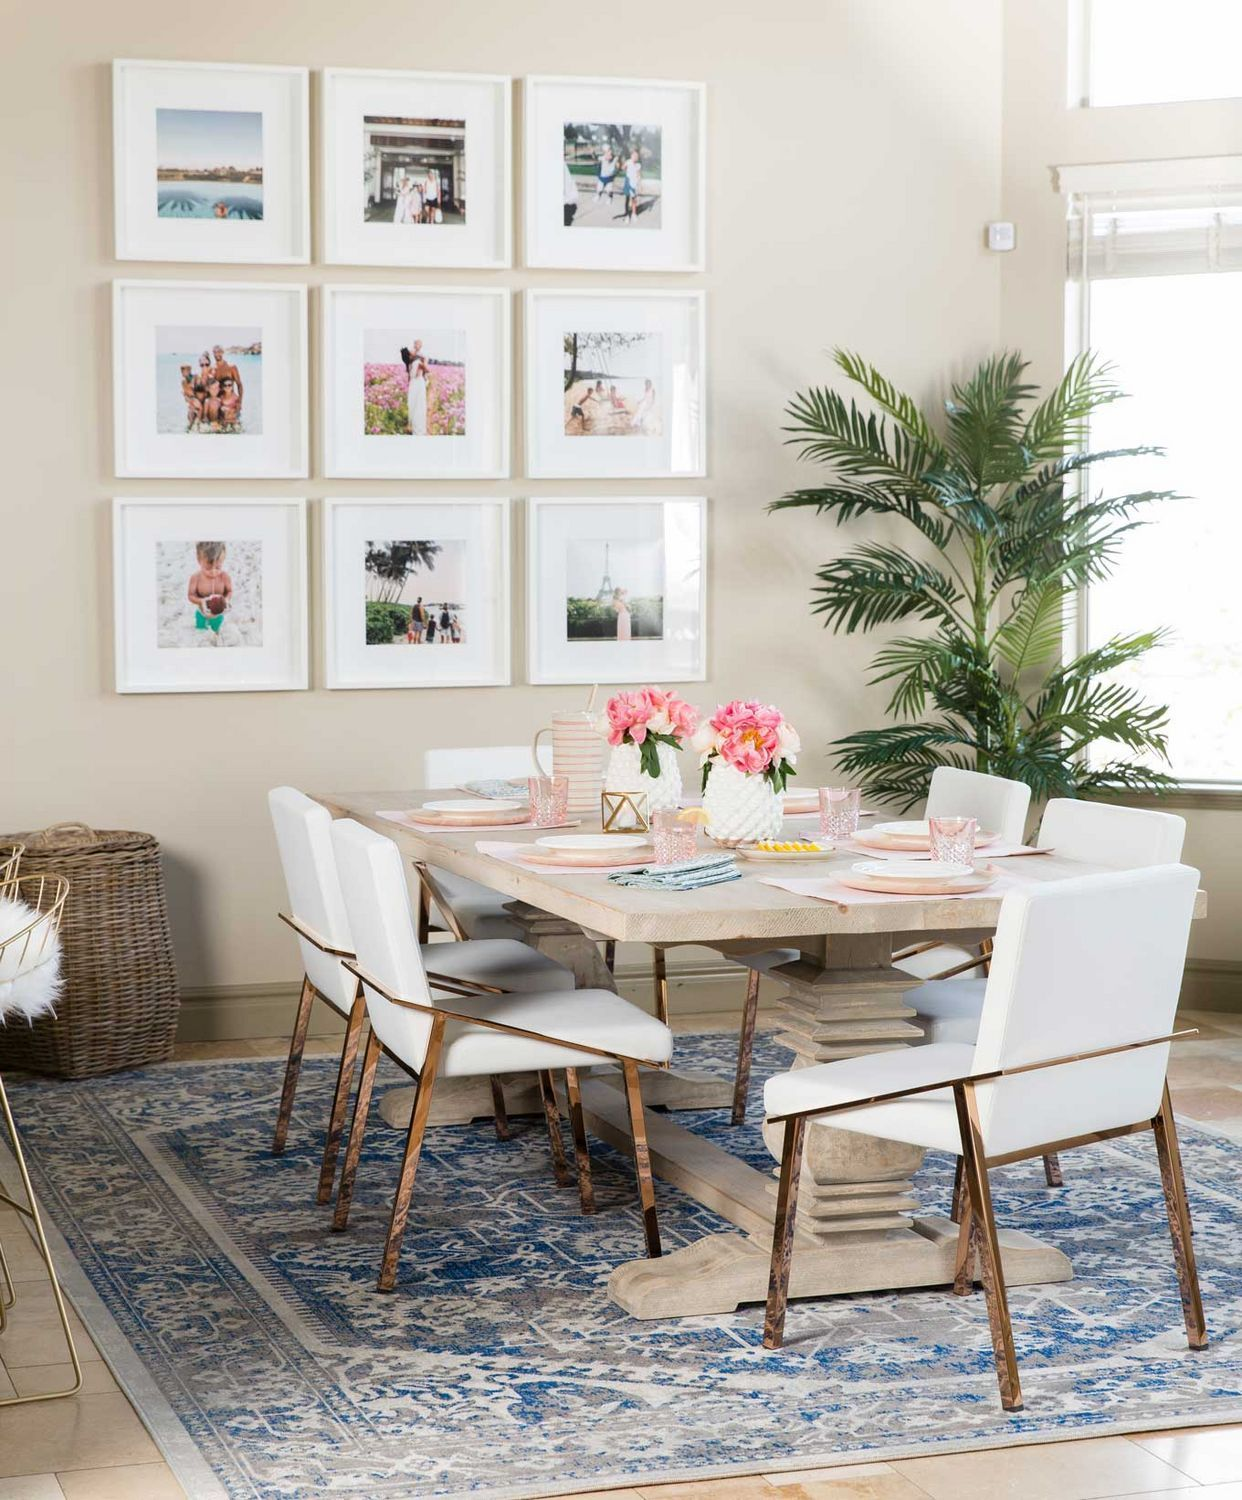 Next Project Dining Room Gallery Wall